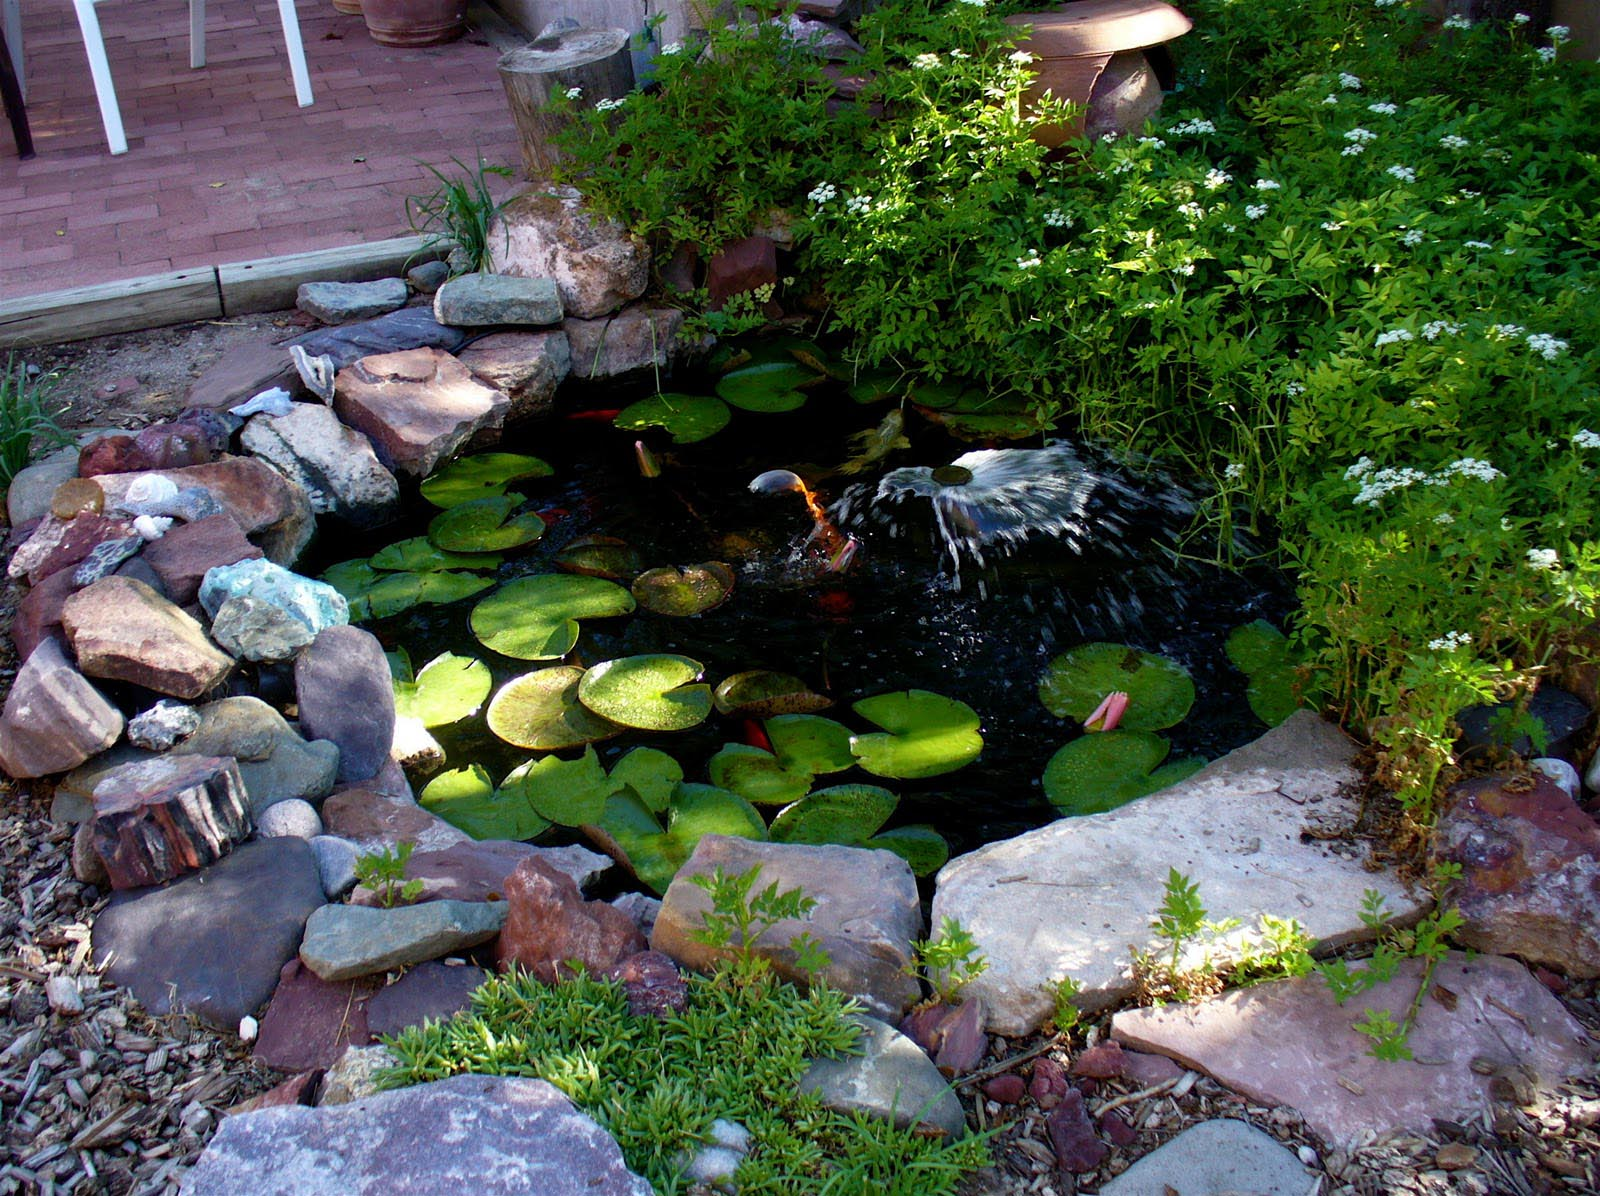 Garden fish pond ideas backyard design ideas for Backyard pond plants and fish